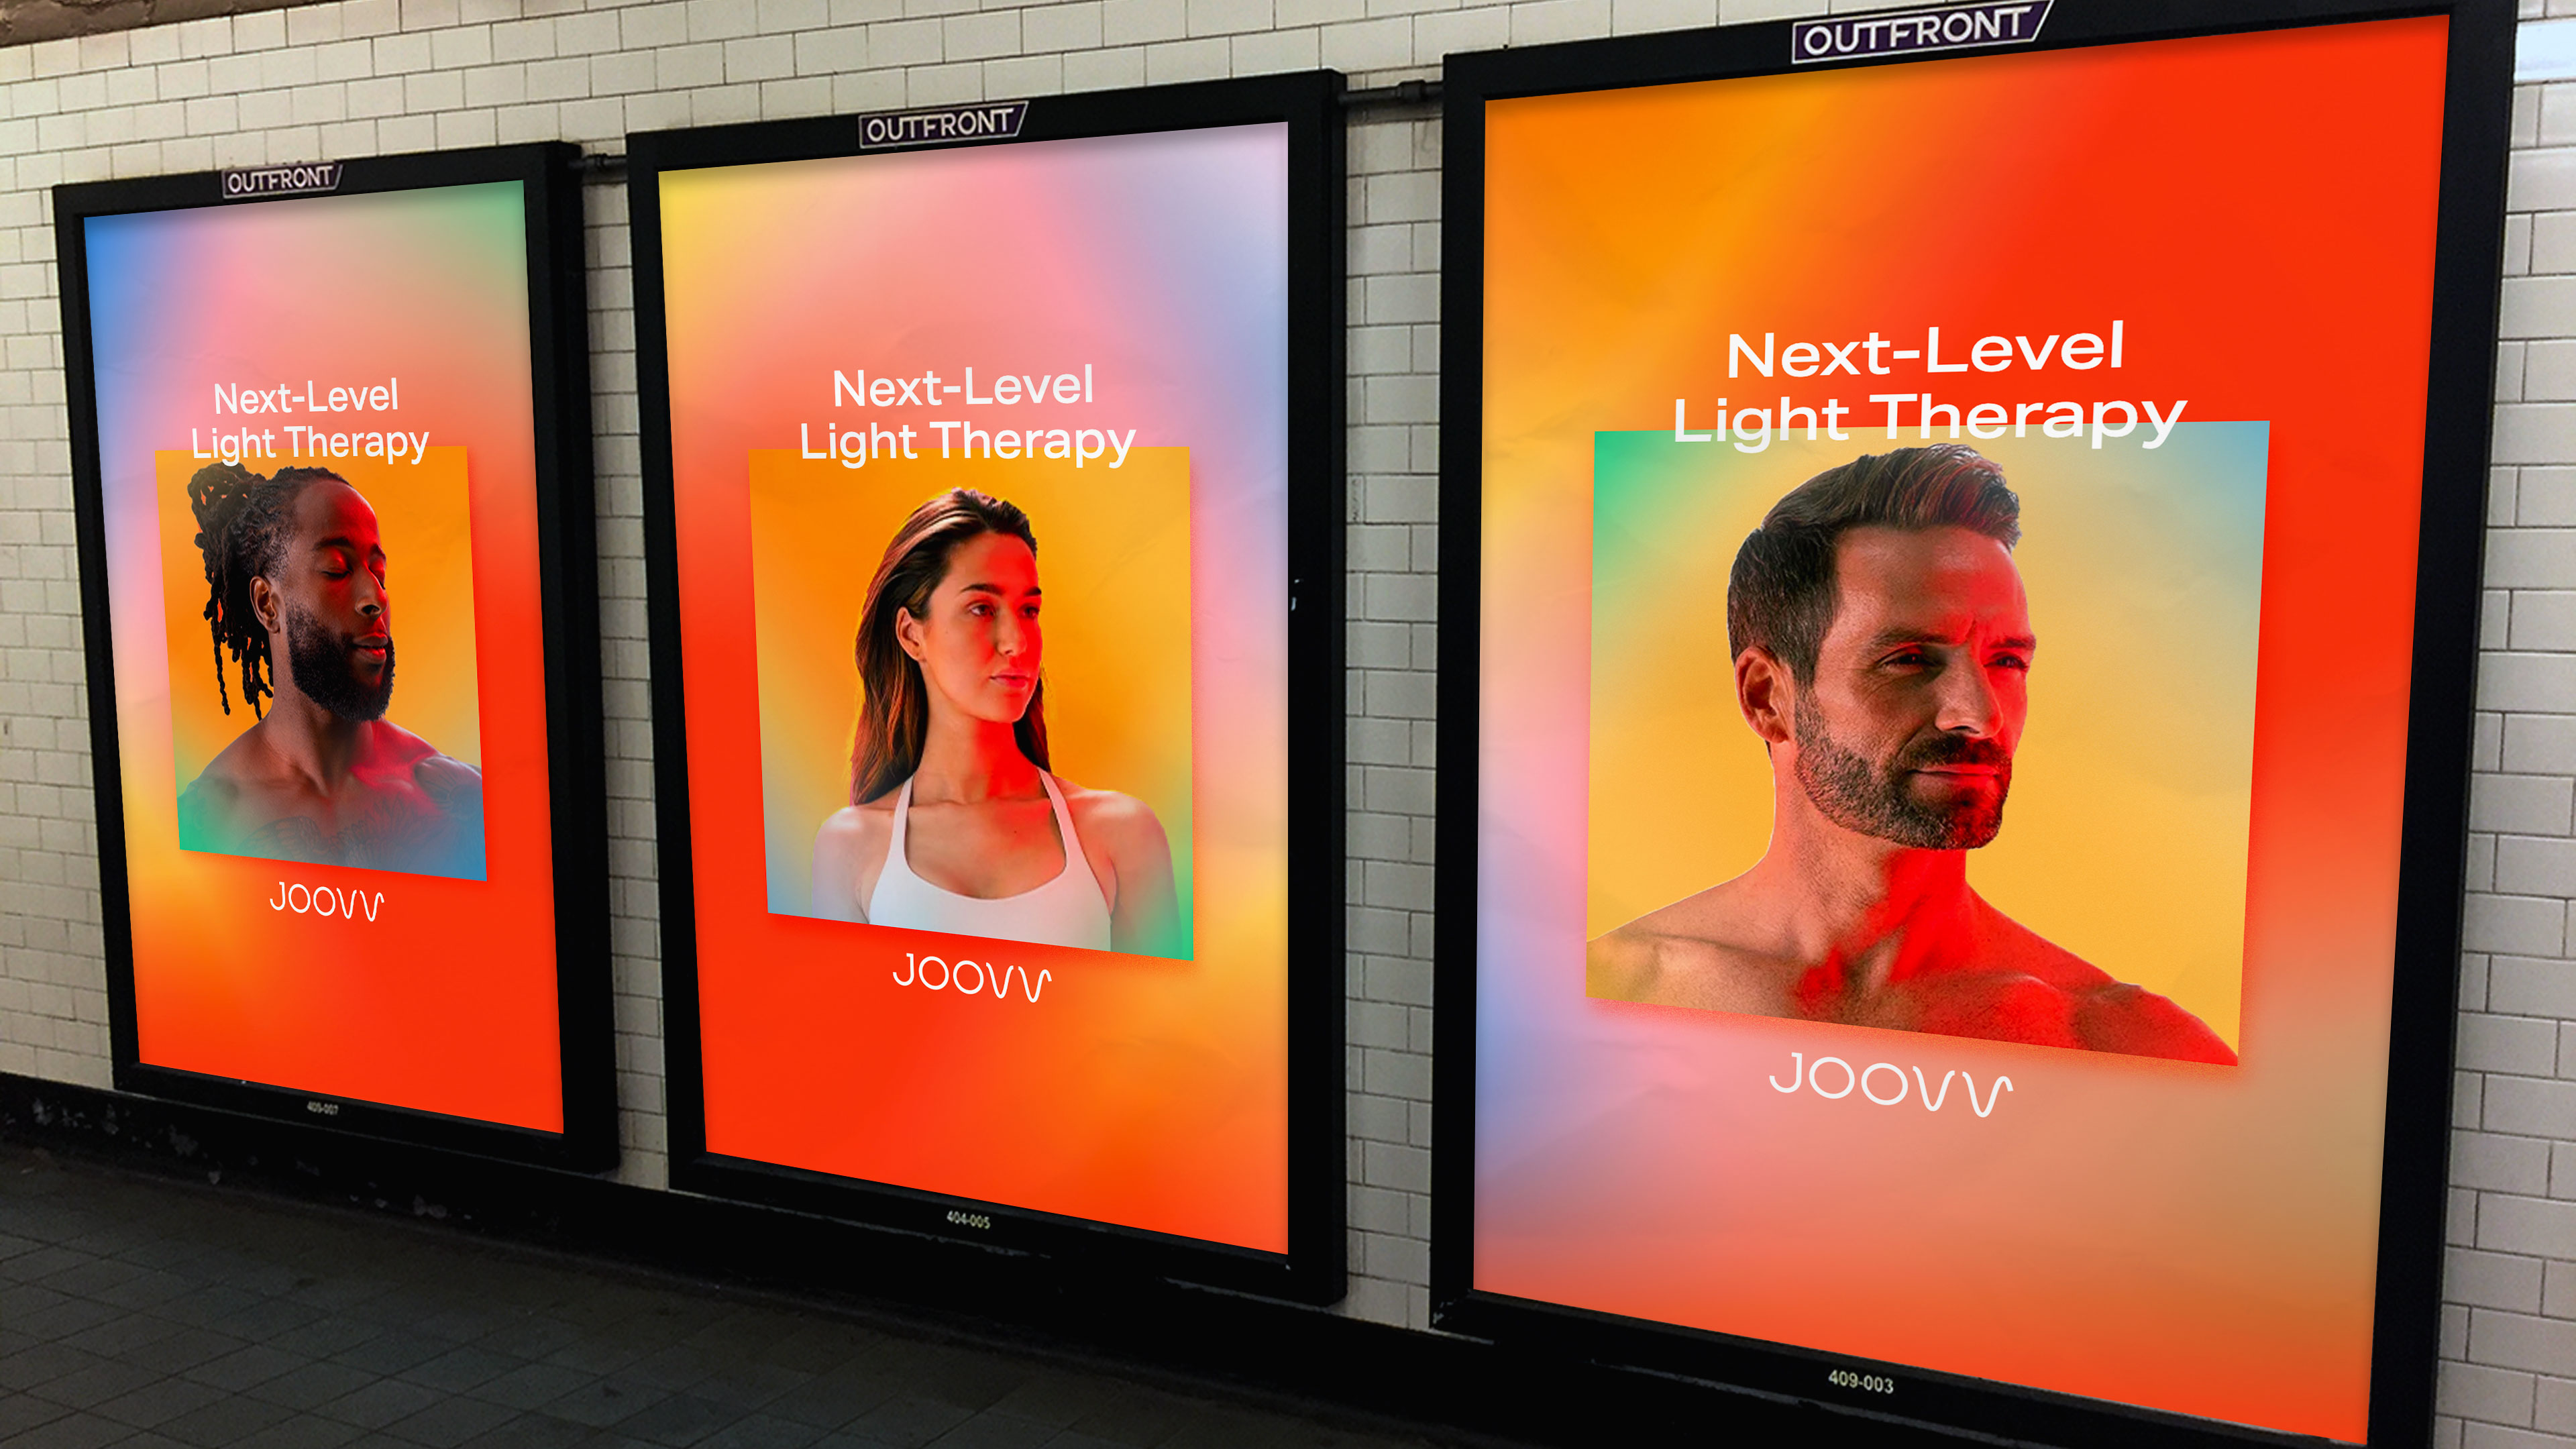 Joovv posters in a subway